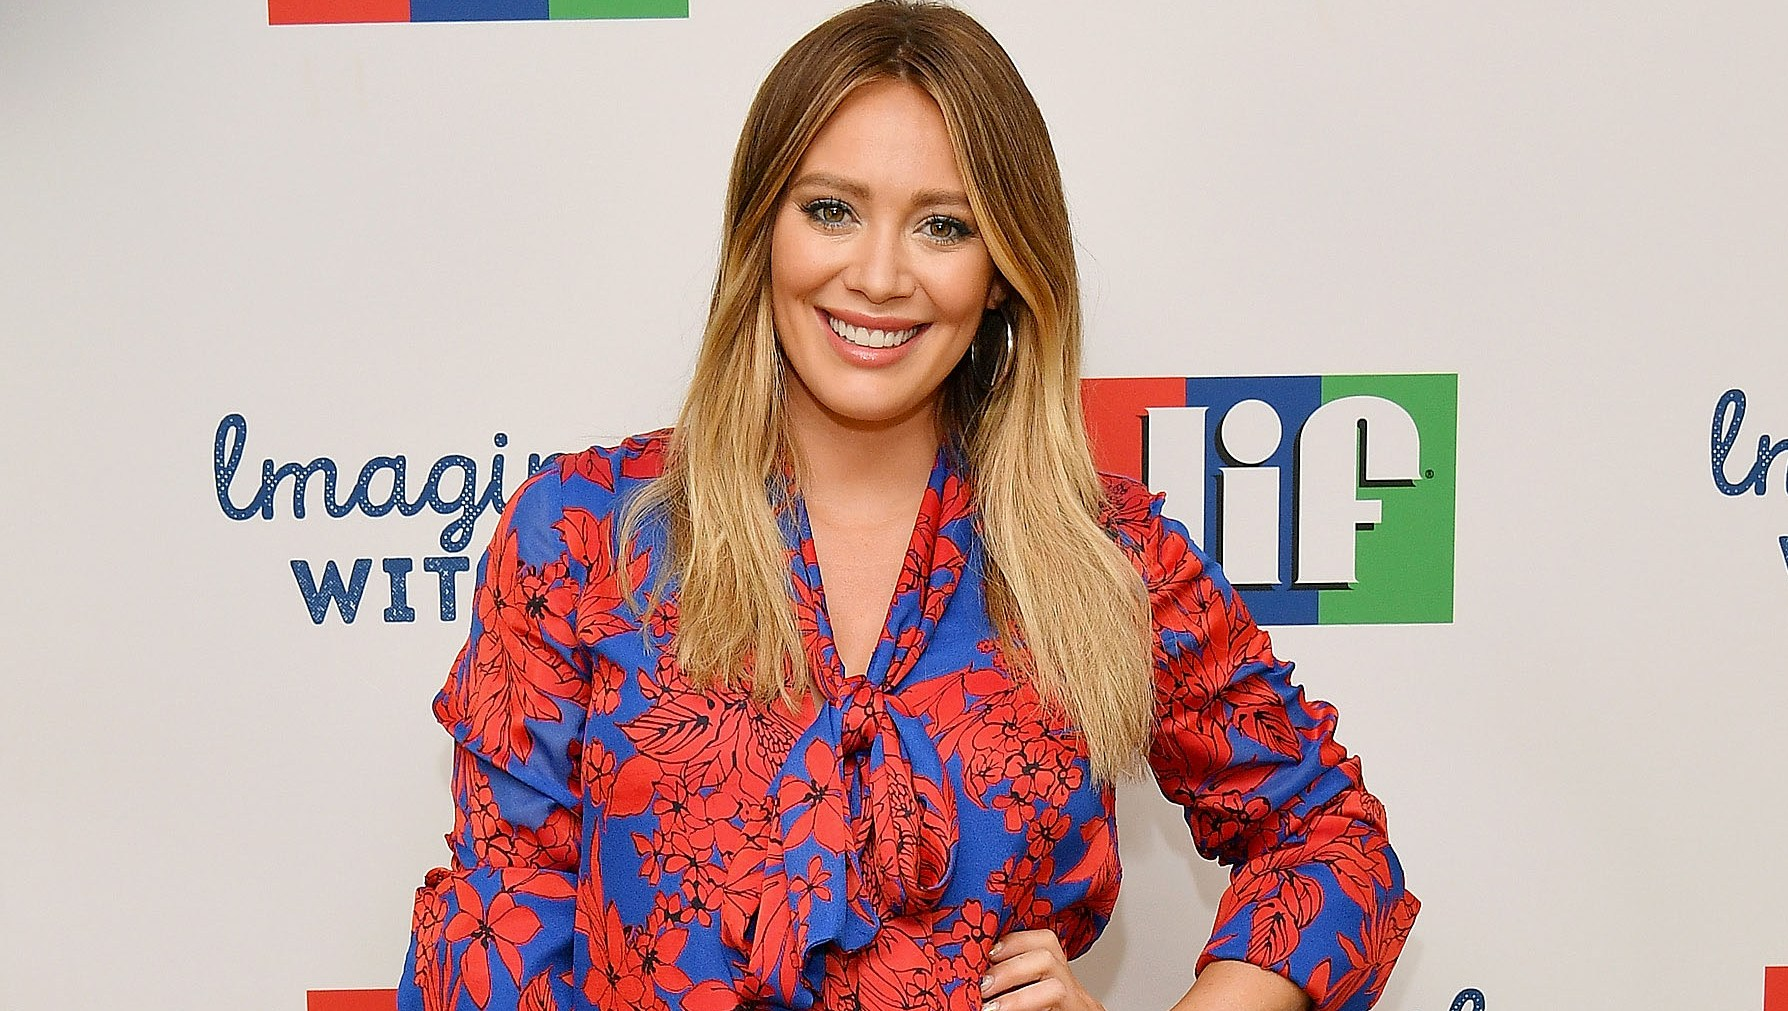 Hilary Duff Says 'Lizzie McGuire' Reboot 'Conversations' Have Happened